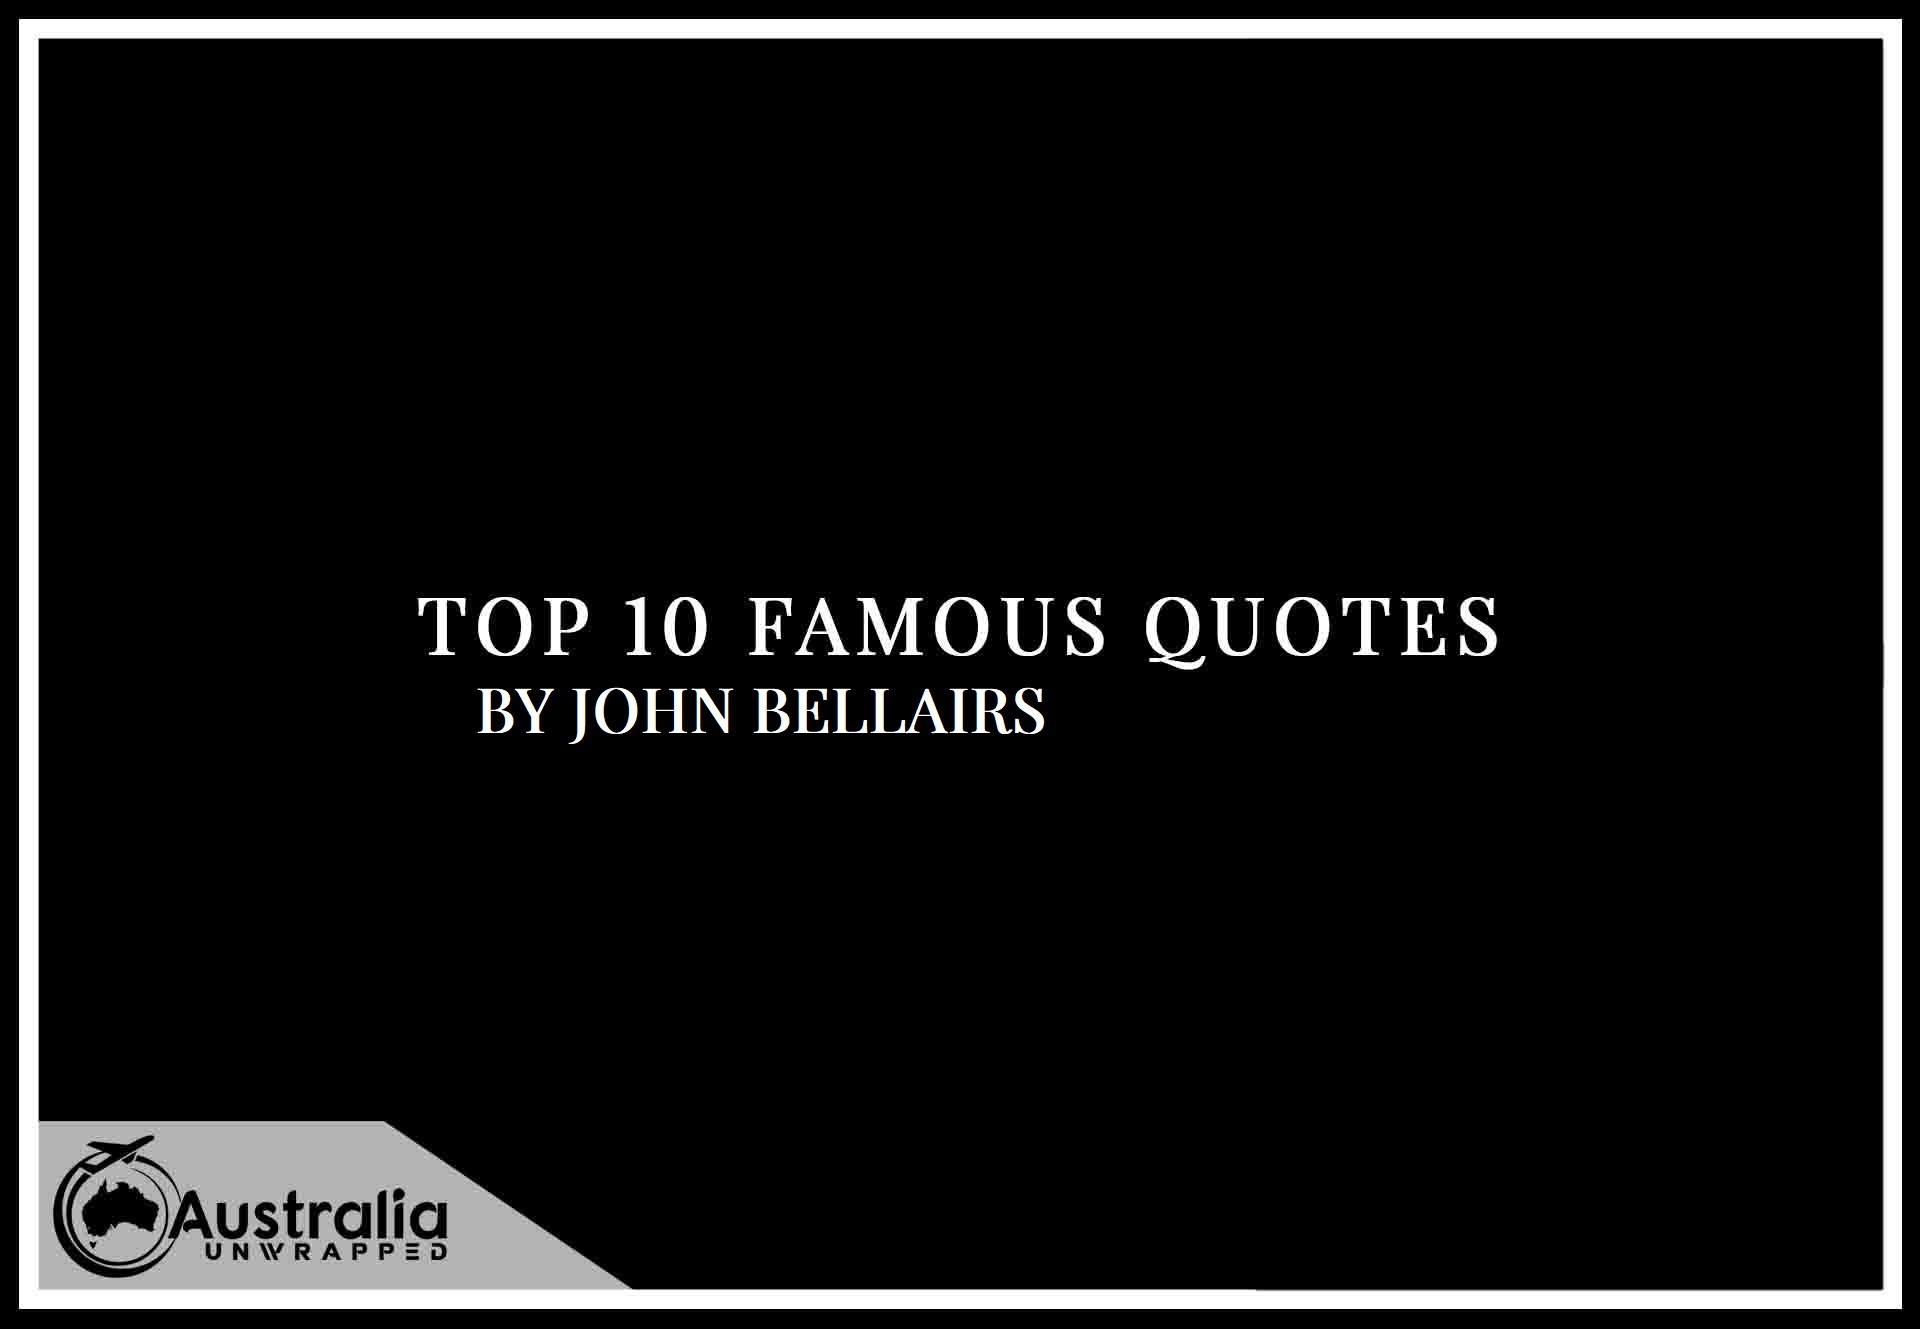 Top 10 Famous Quotes by Author John Bellairs